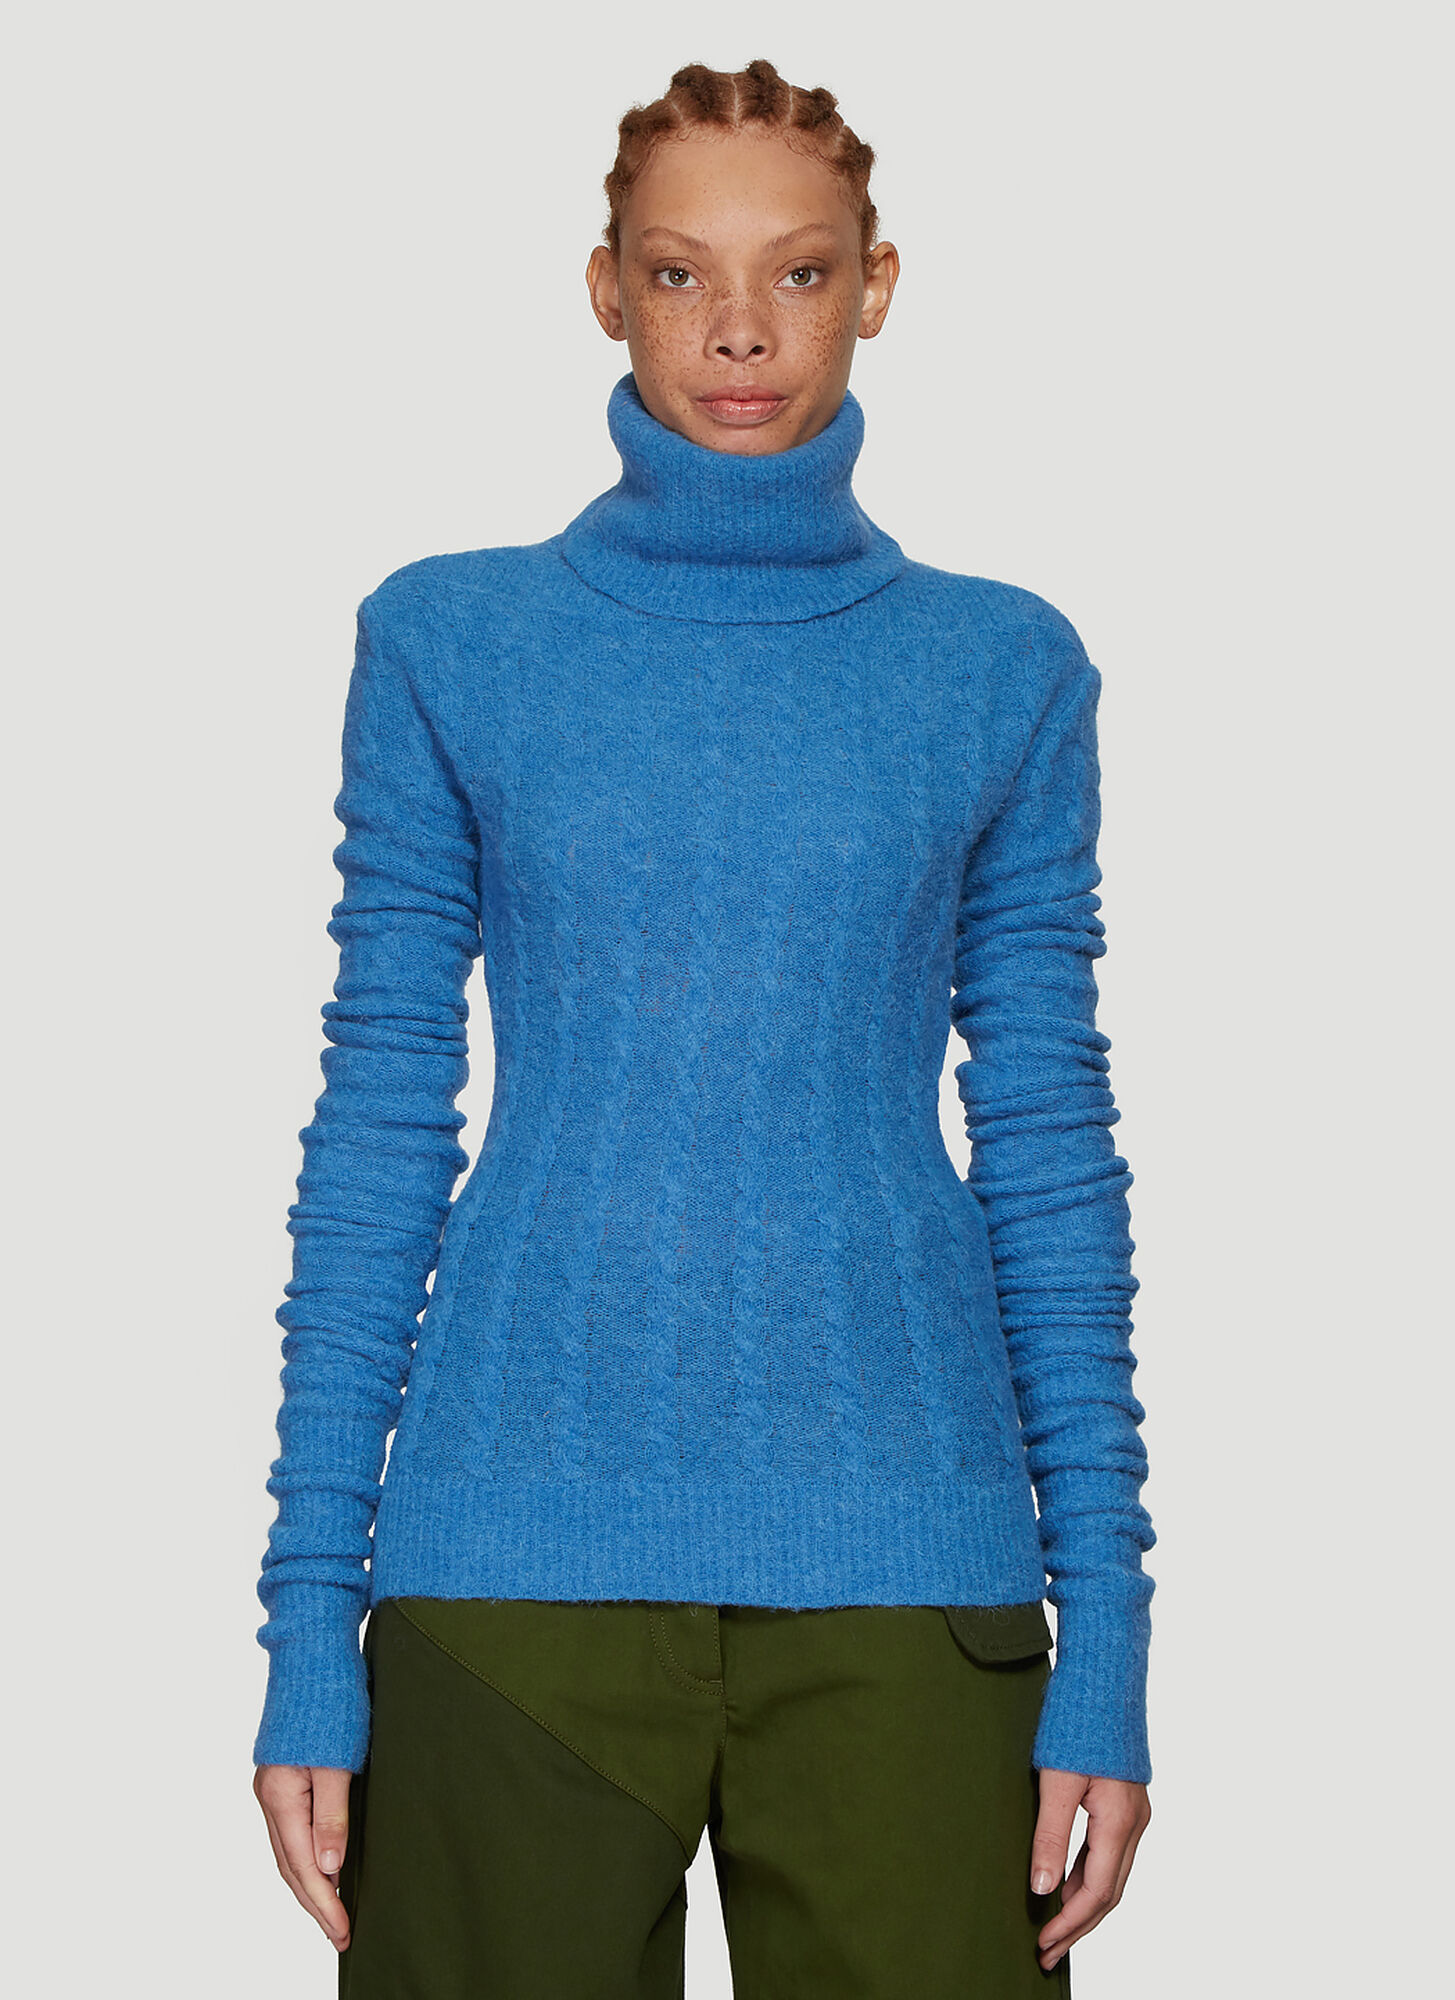 Jacquemus La Maille Sofia Sweater in Blue